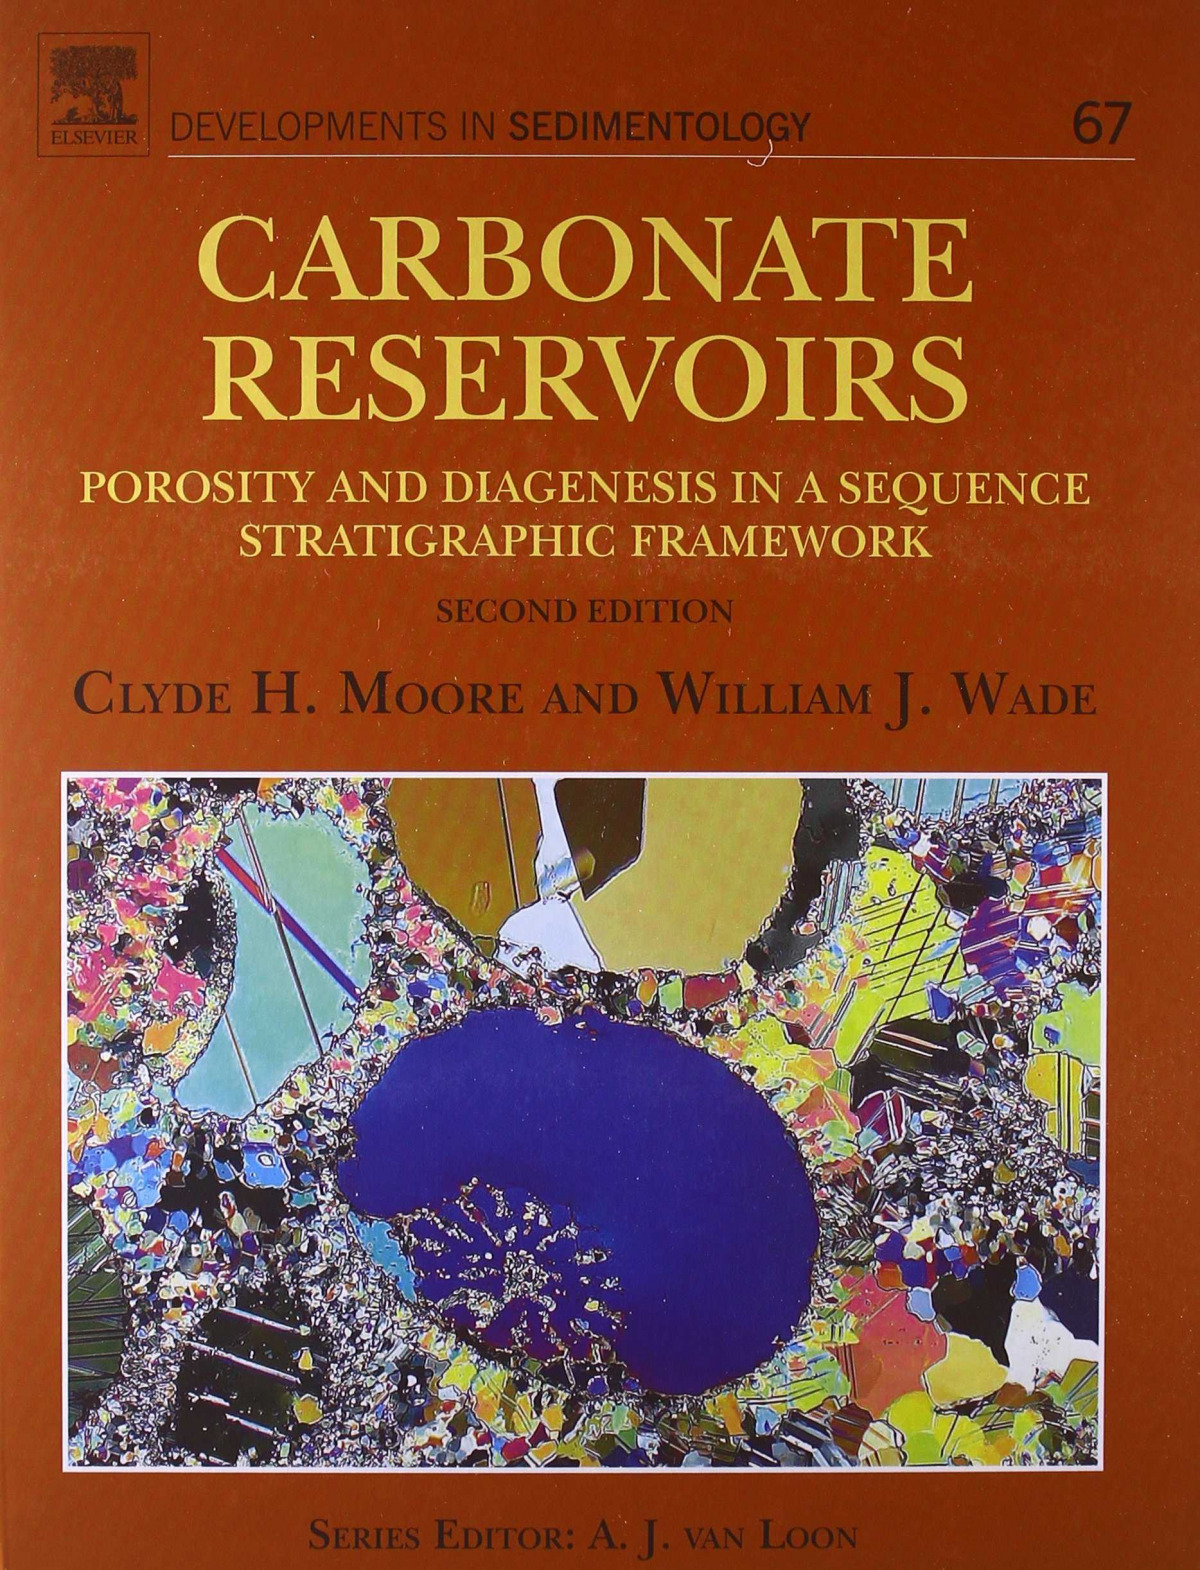 Carbonate Reservoirs, 2nd Edition. Porosity and diagenesis in a s